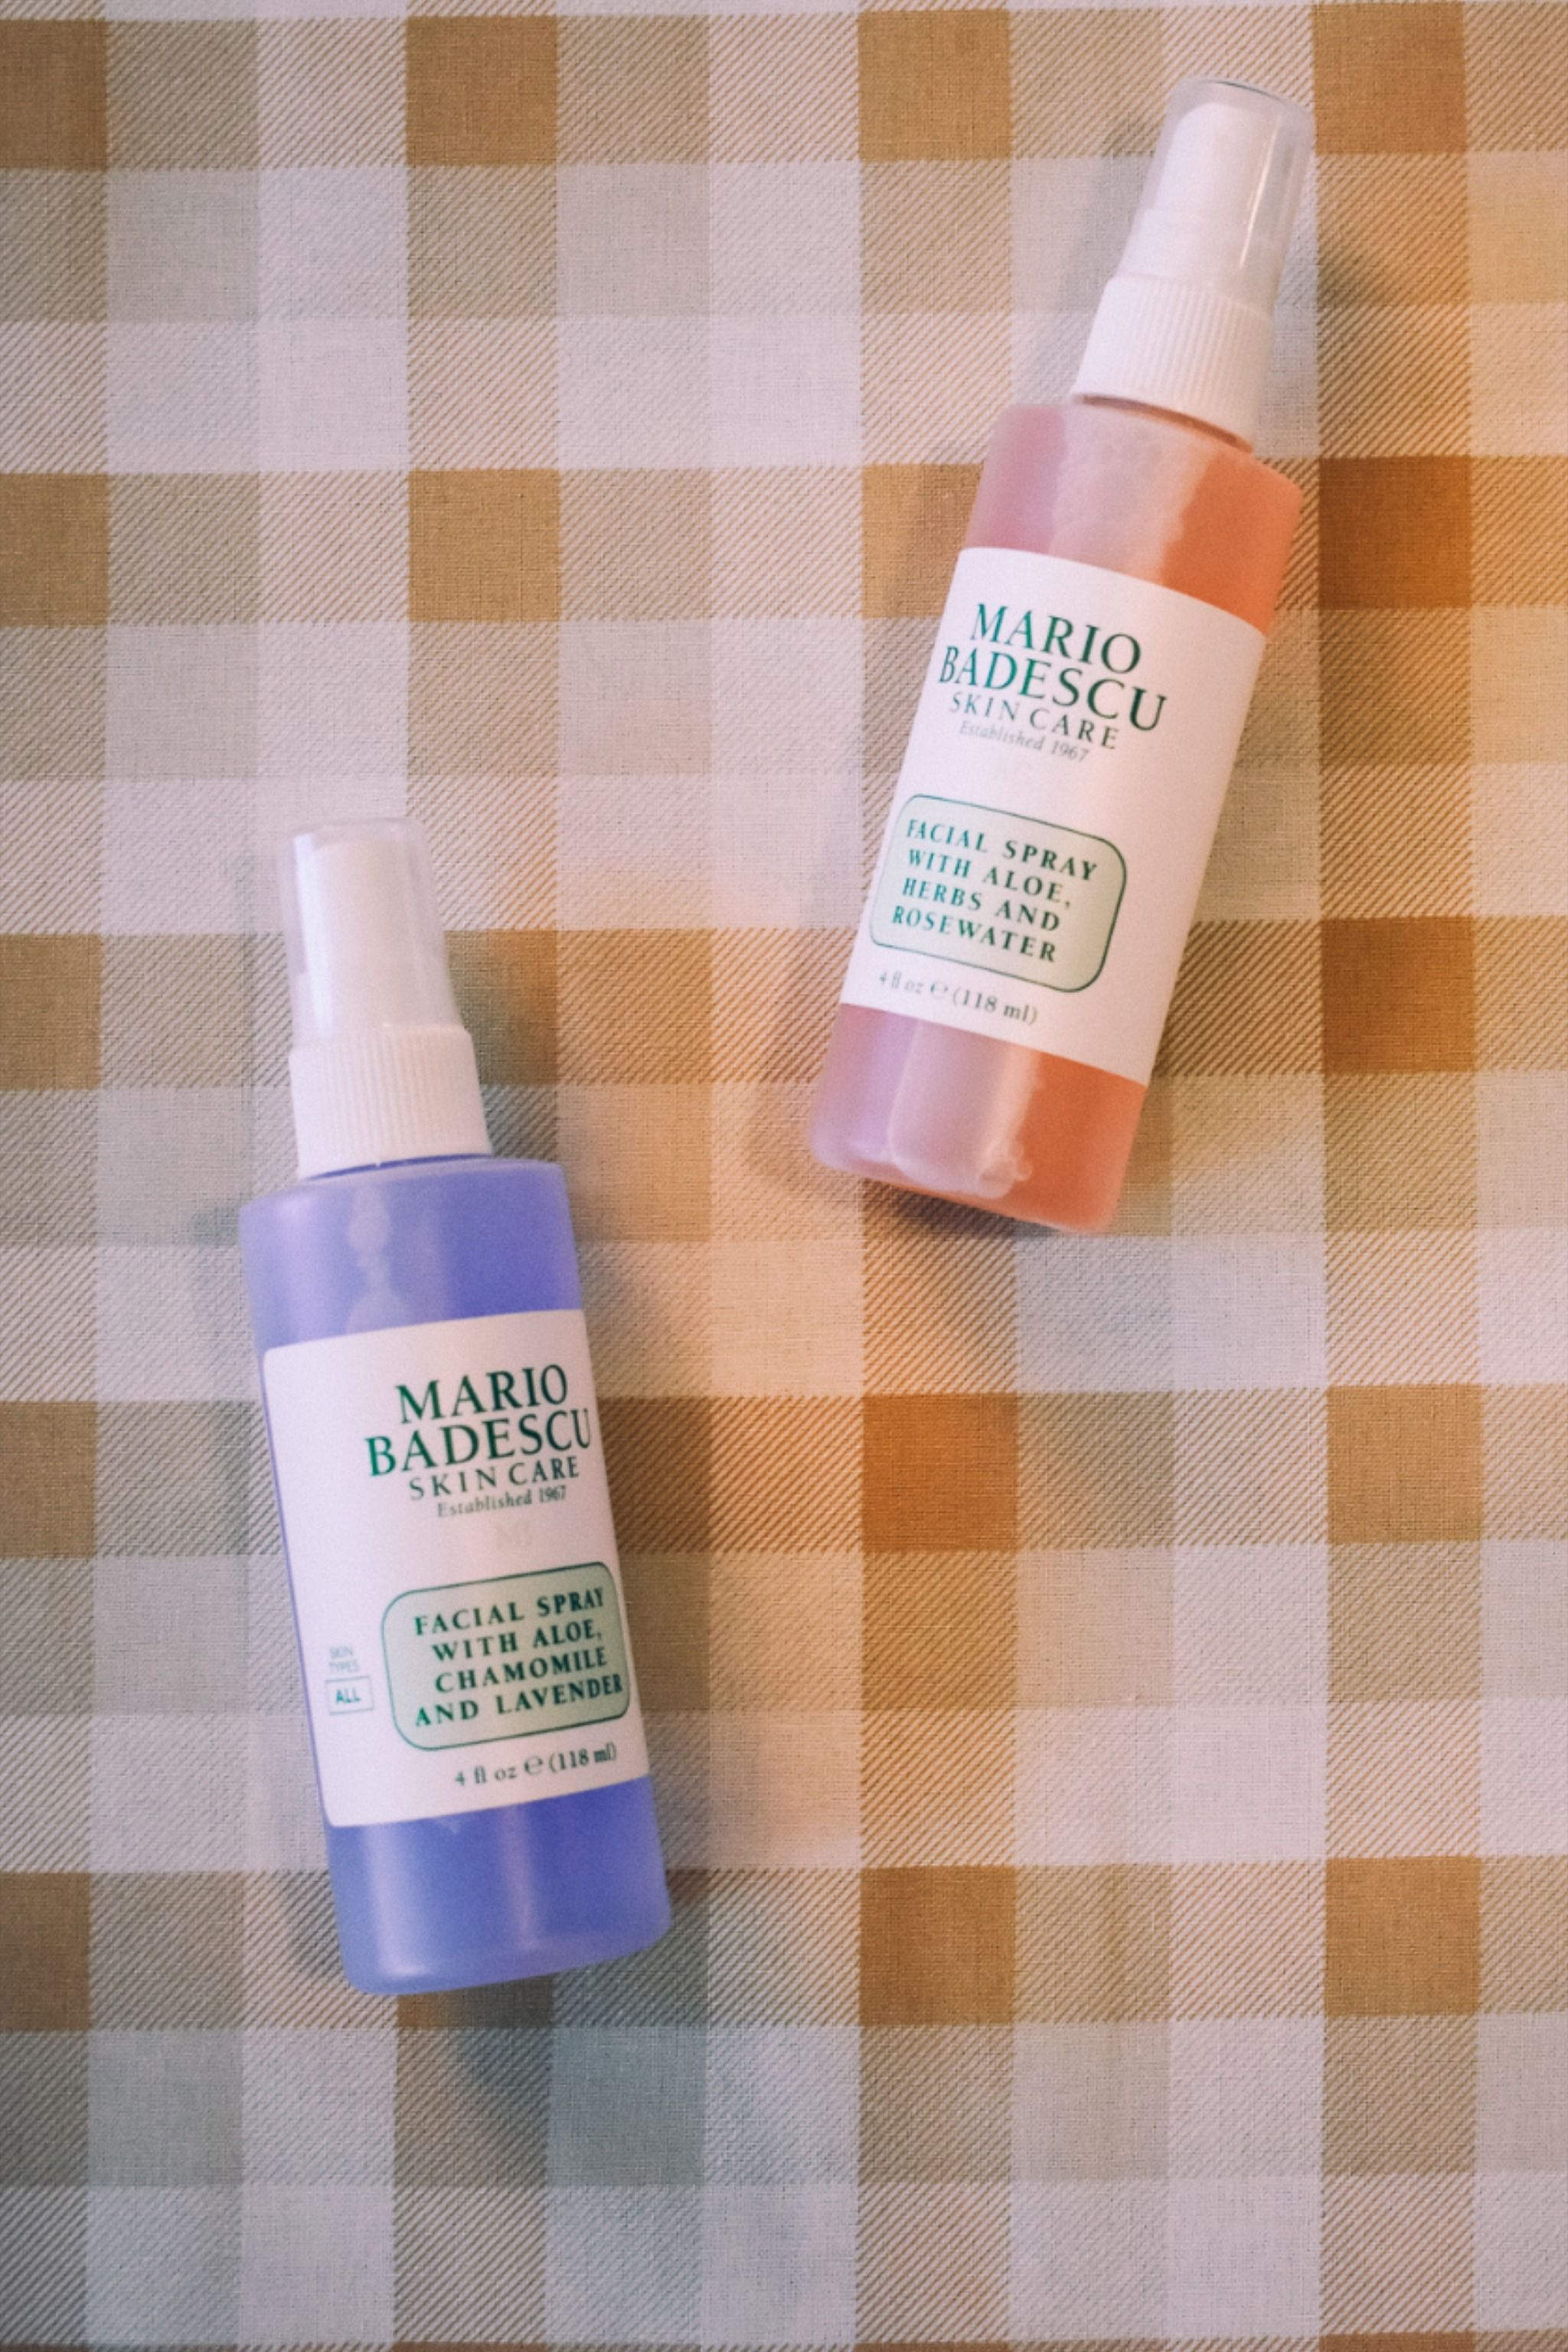 What Is Toner For Facial Toner Faq What Does Toner Do How To Use Skin Care Routine Faq Skin Care What Does Toner Do Facial Toner